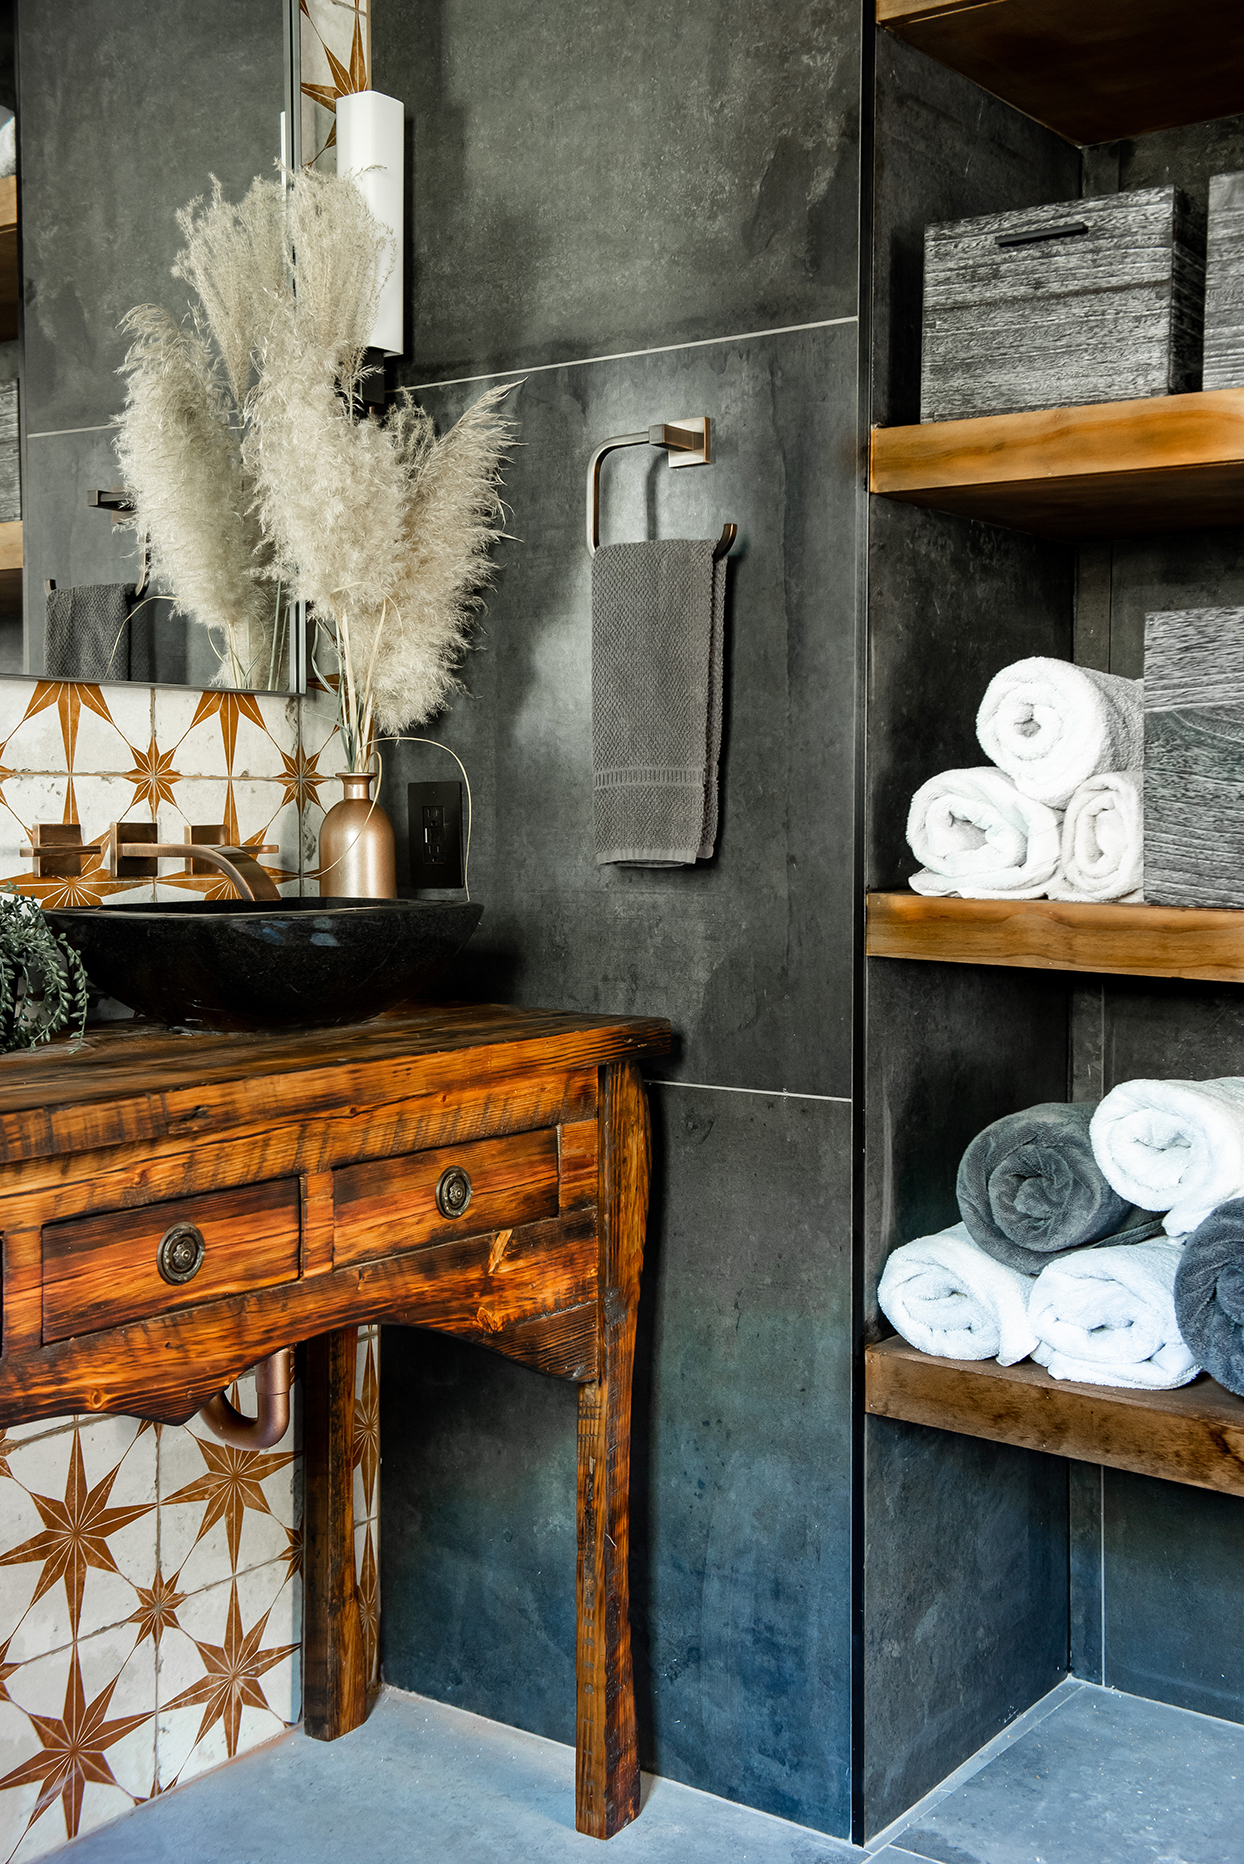 bathroom with slate tile floor and walls with wood vanity and builtin shelves lined with towels